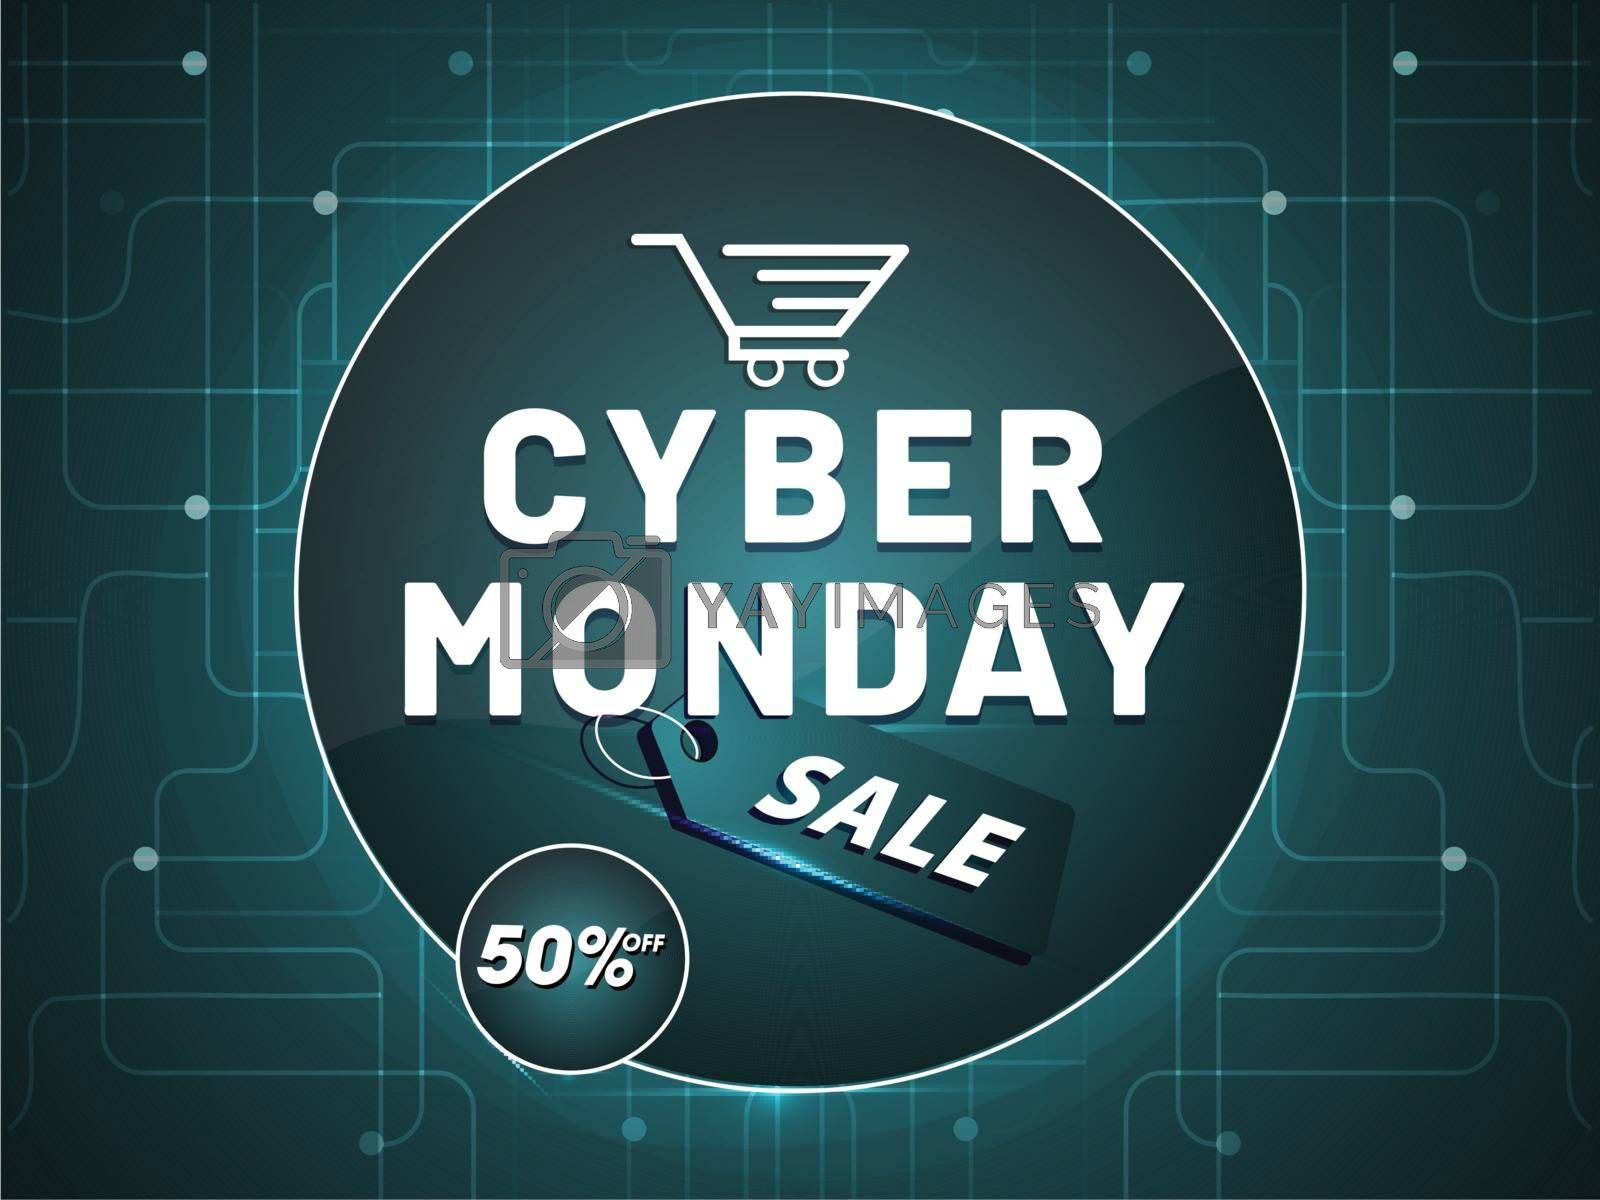 Cyber Monday Sale with tag and 50% discount offer on neural background, poster or banner design for advertisement concept.